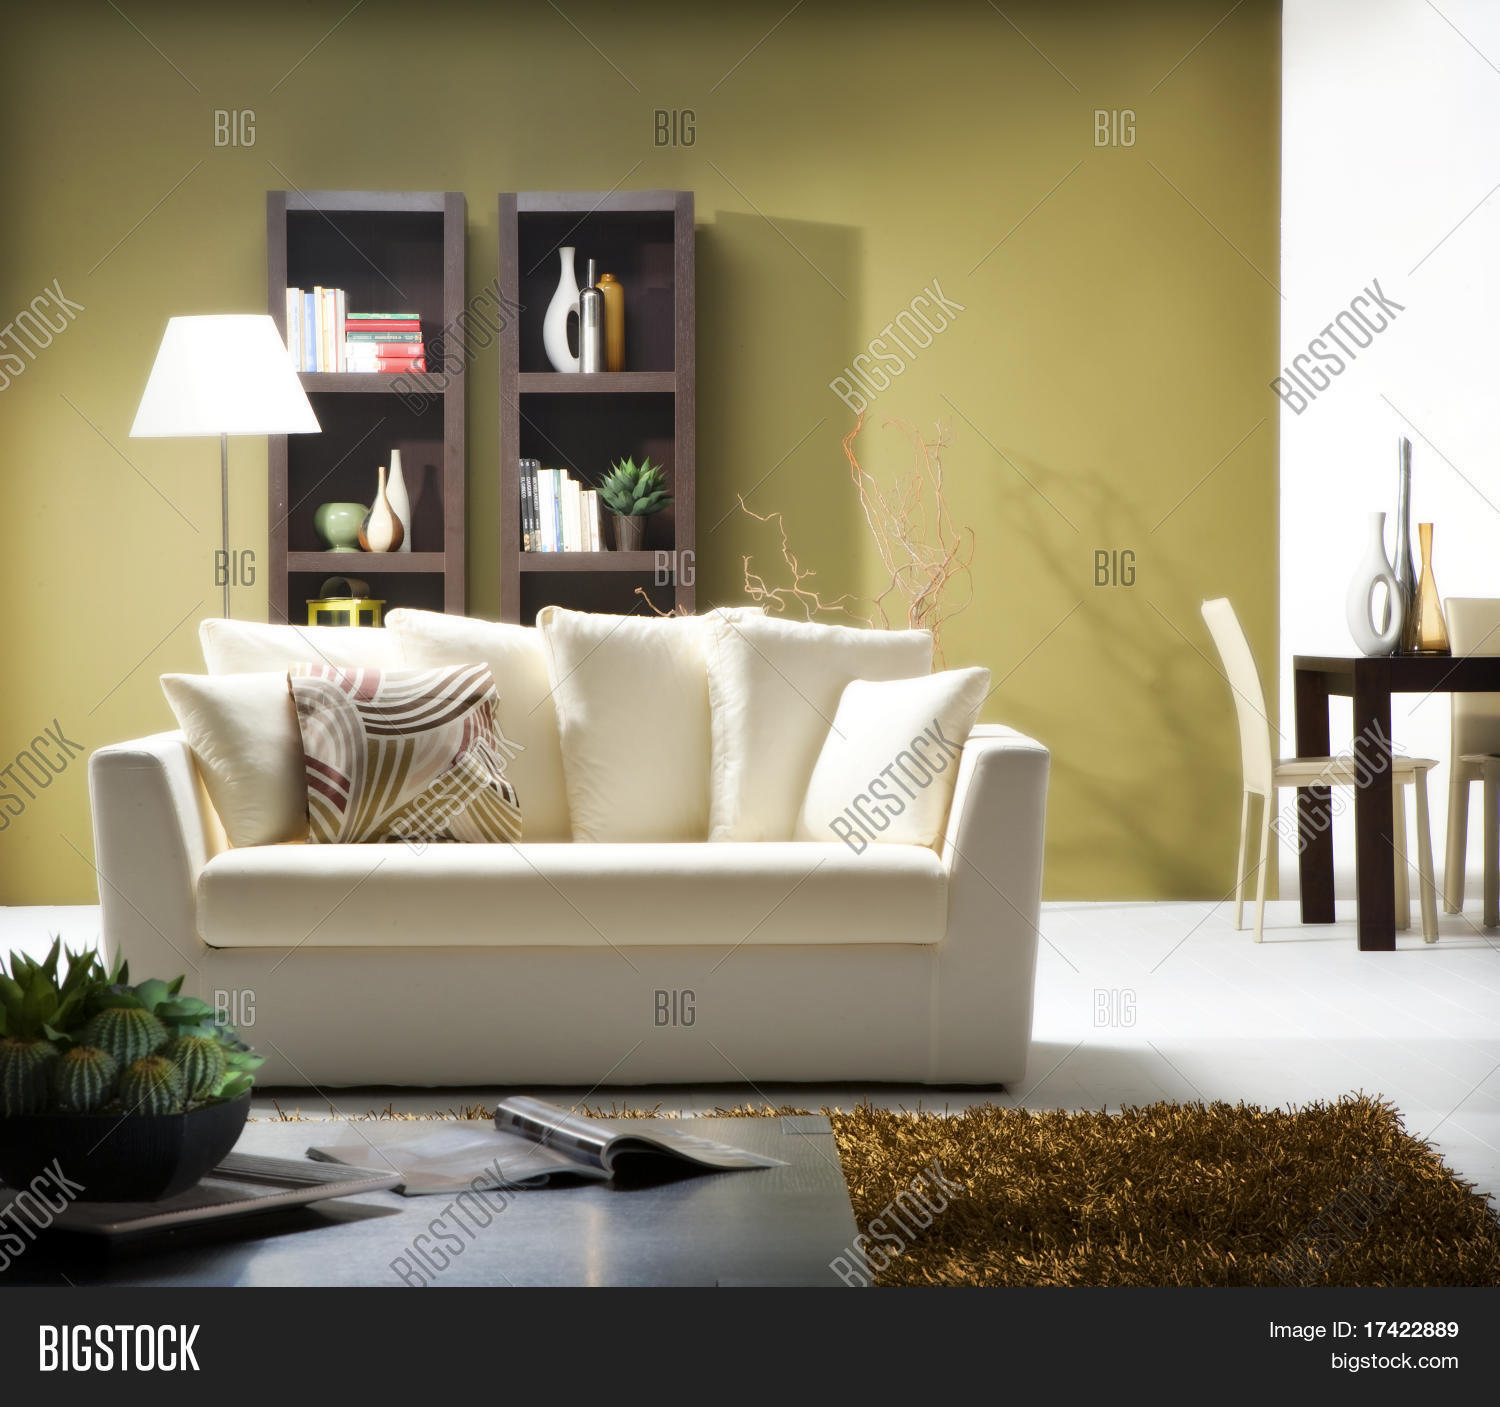 atmosphere,background,carpet,chair,colorful,couch,couple,decoration,dinning,double,family,family room,furniture,green,indoors,industry,information,interior,light,living,living room,living room interior,living room wall,lounge,magazine,minimal,modern,modern living room,plant,print,private,relax,room,sample,site,sleep,sofa,table,telephone,template,text,texture,type,wall,wallpaper,web,write